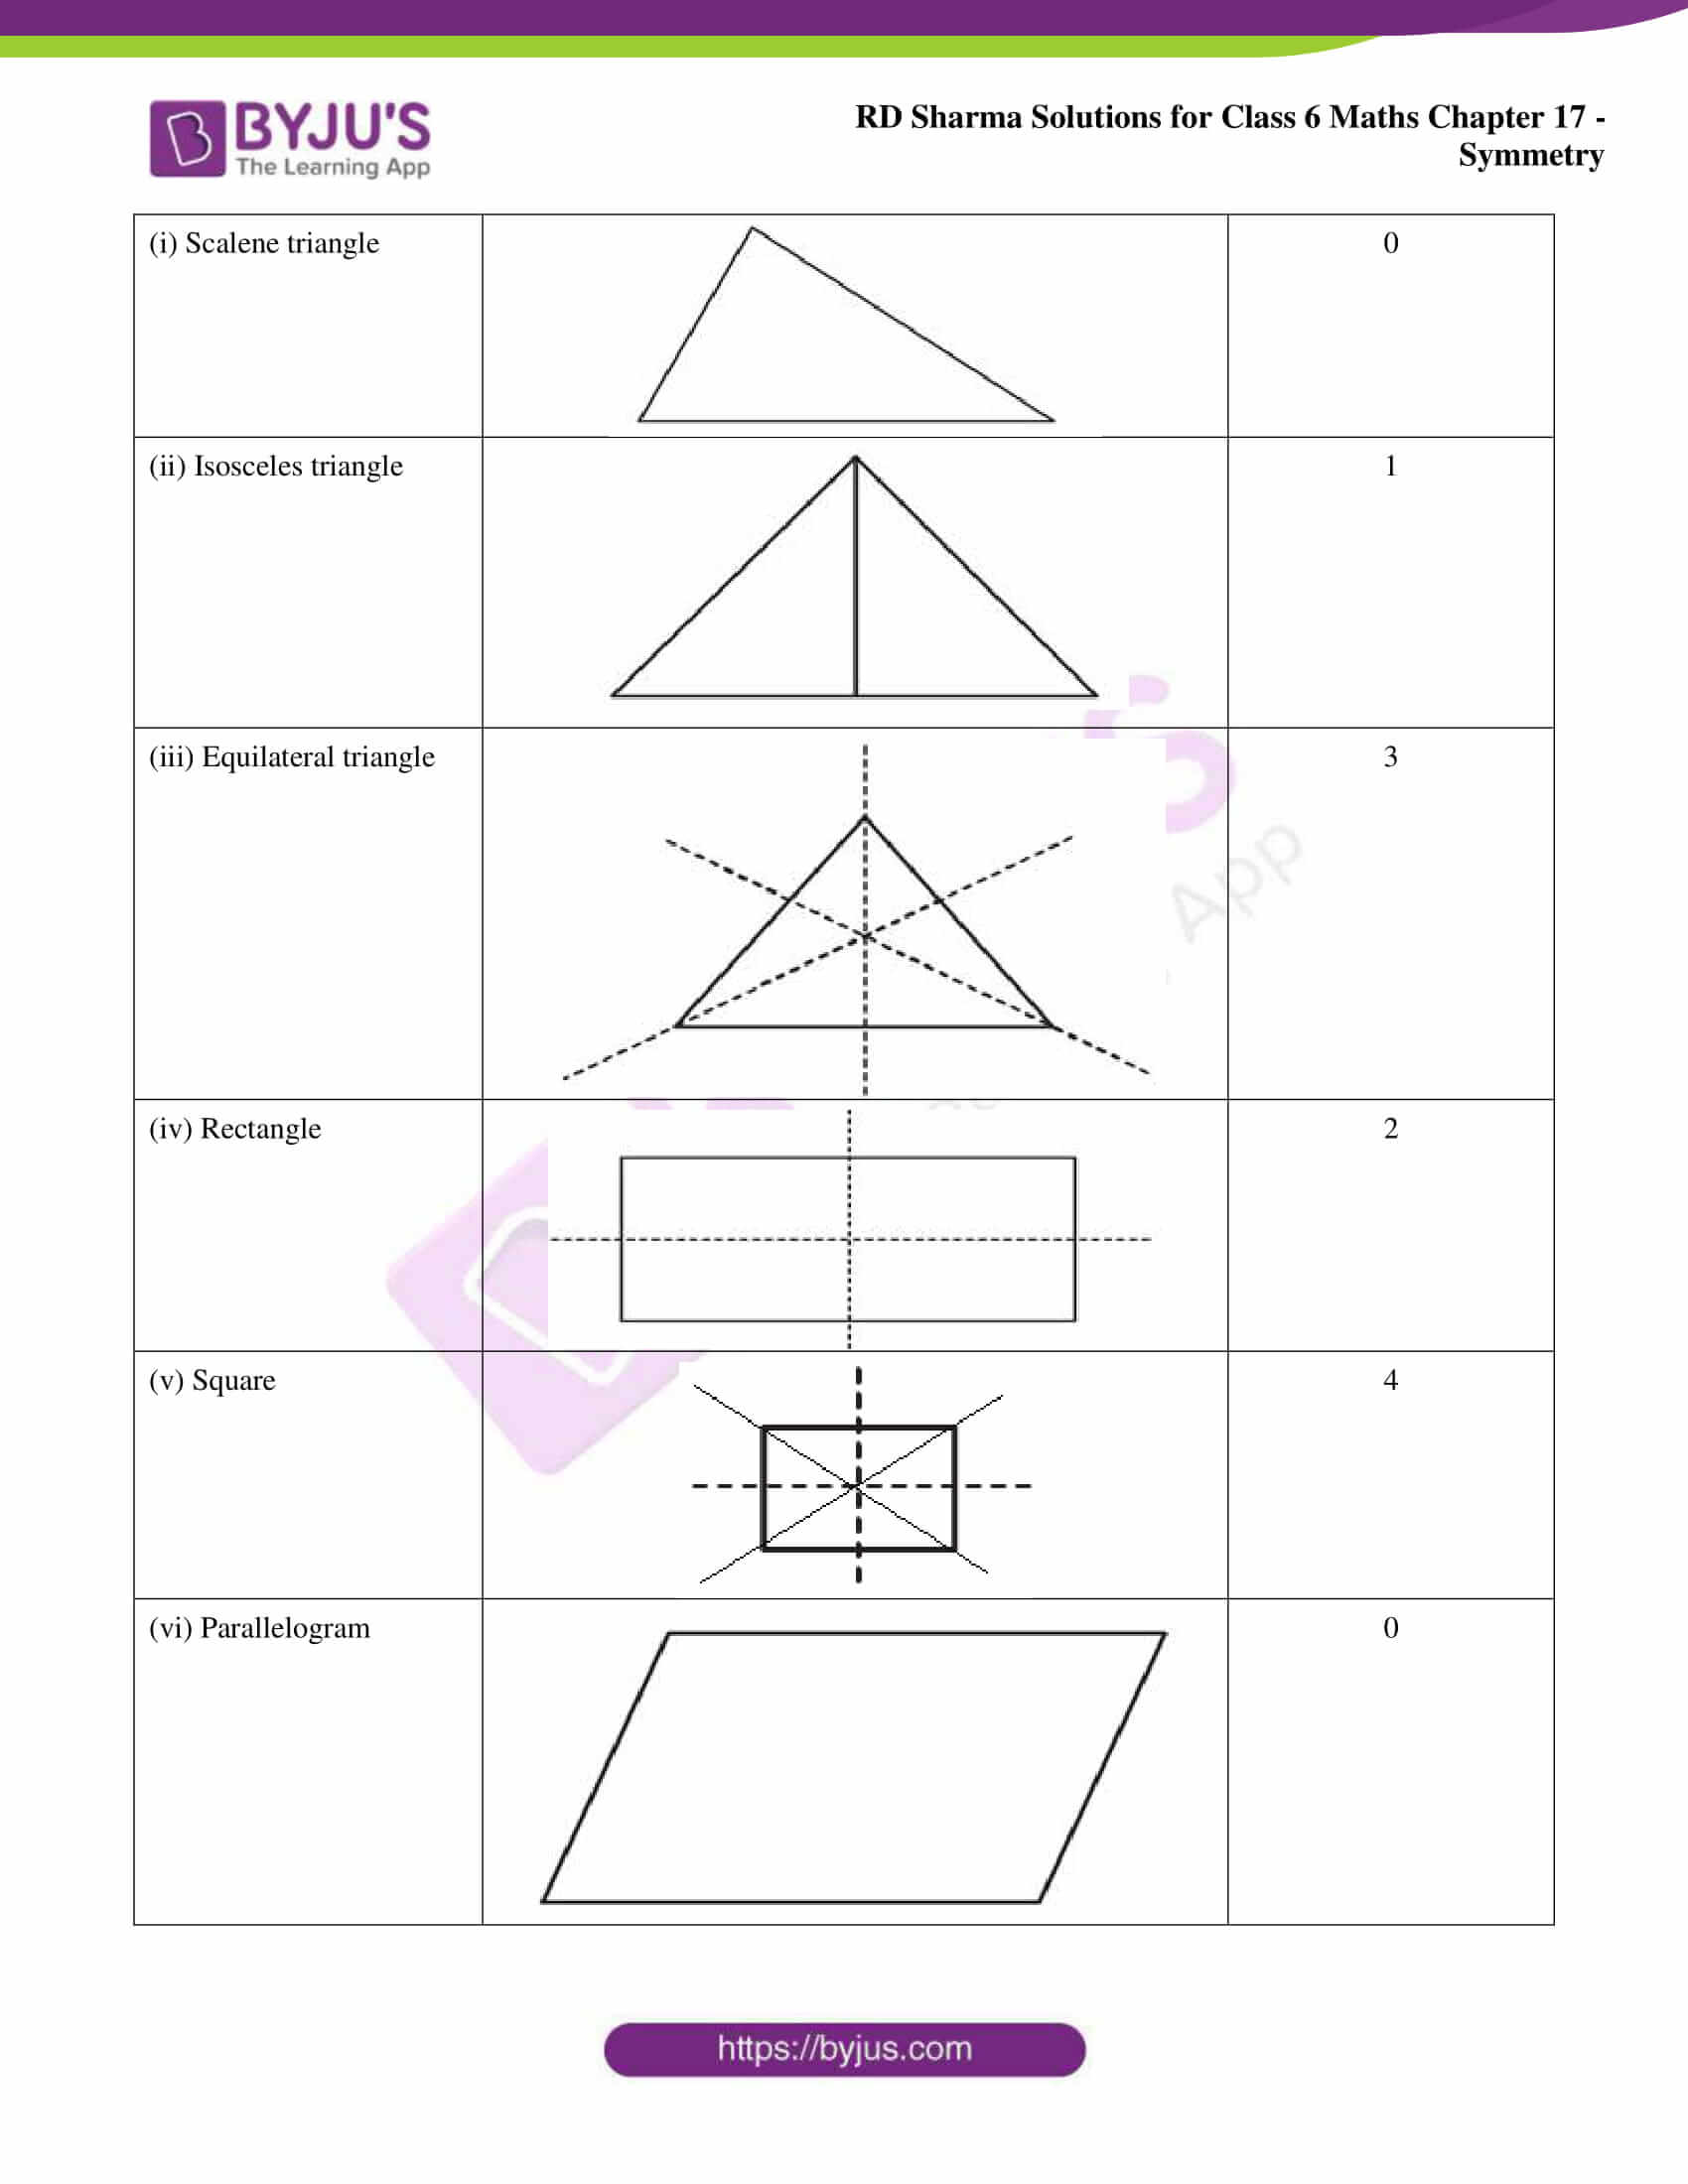 rd sharma solutions nov2020 class 6 maths chapter 17 exercise 3 02